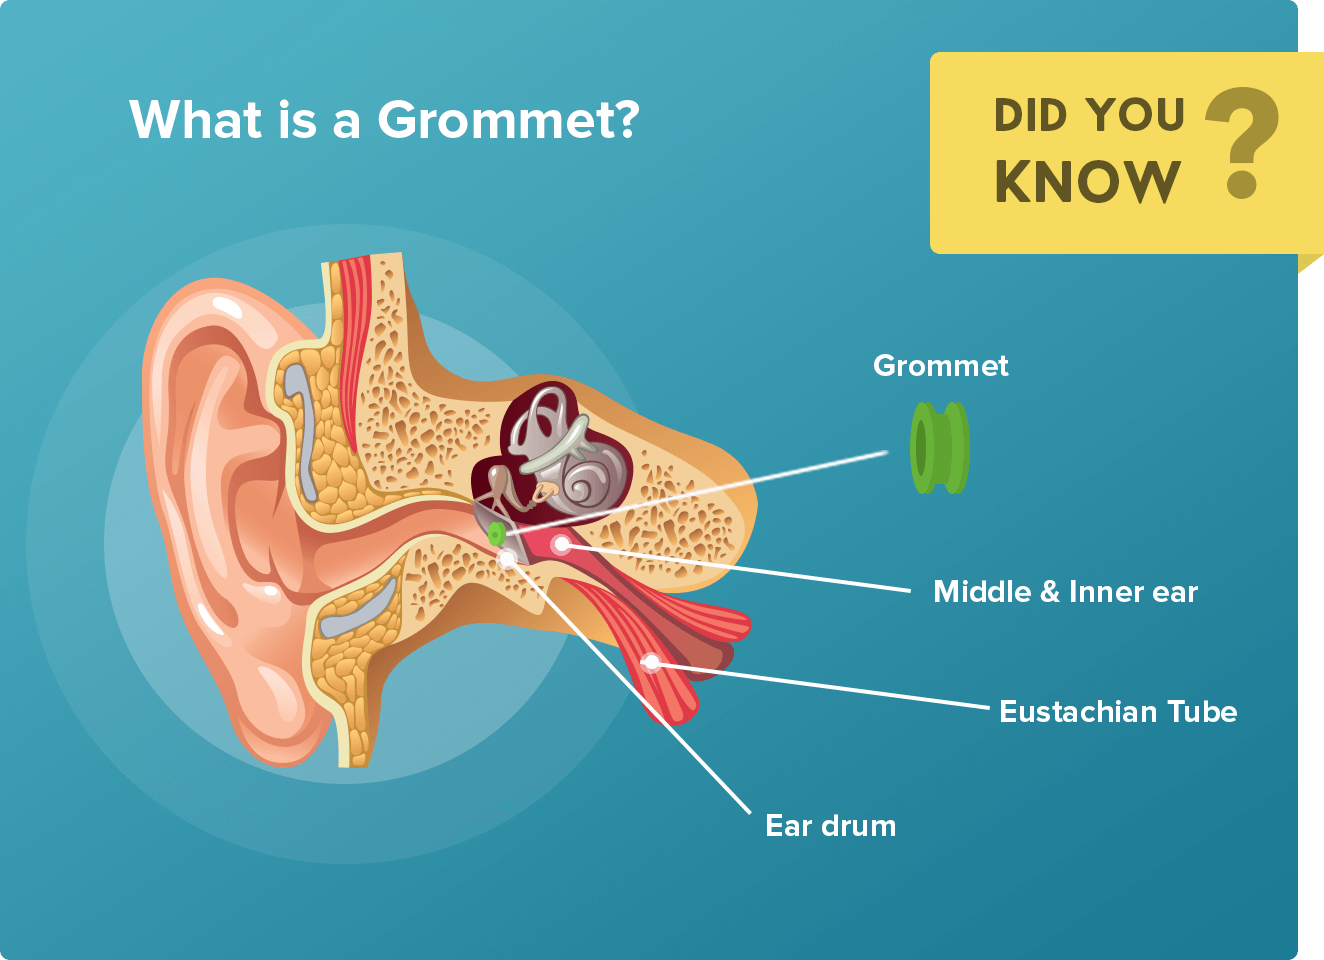 What is a Grommet?